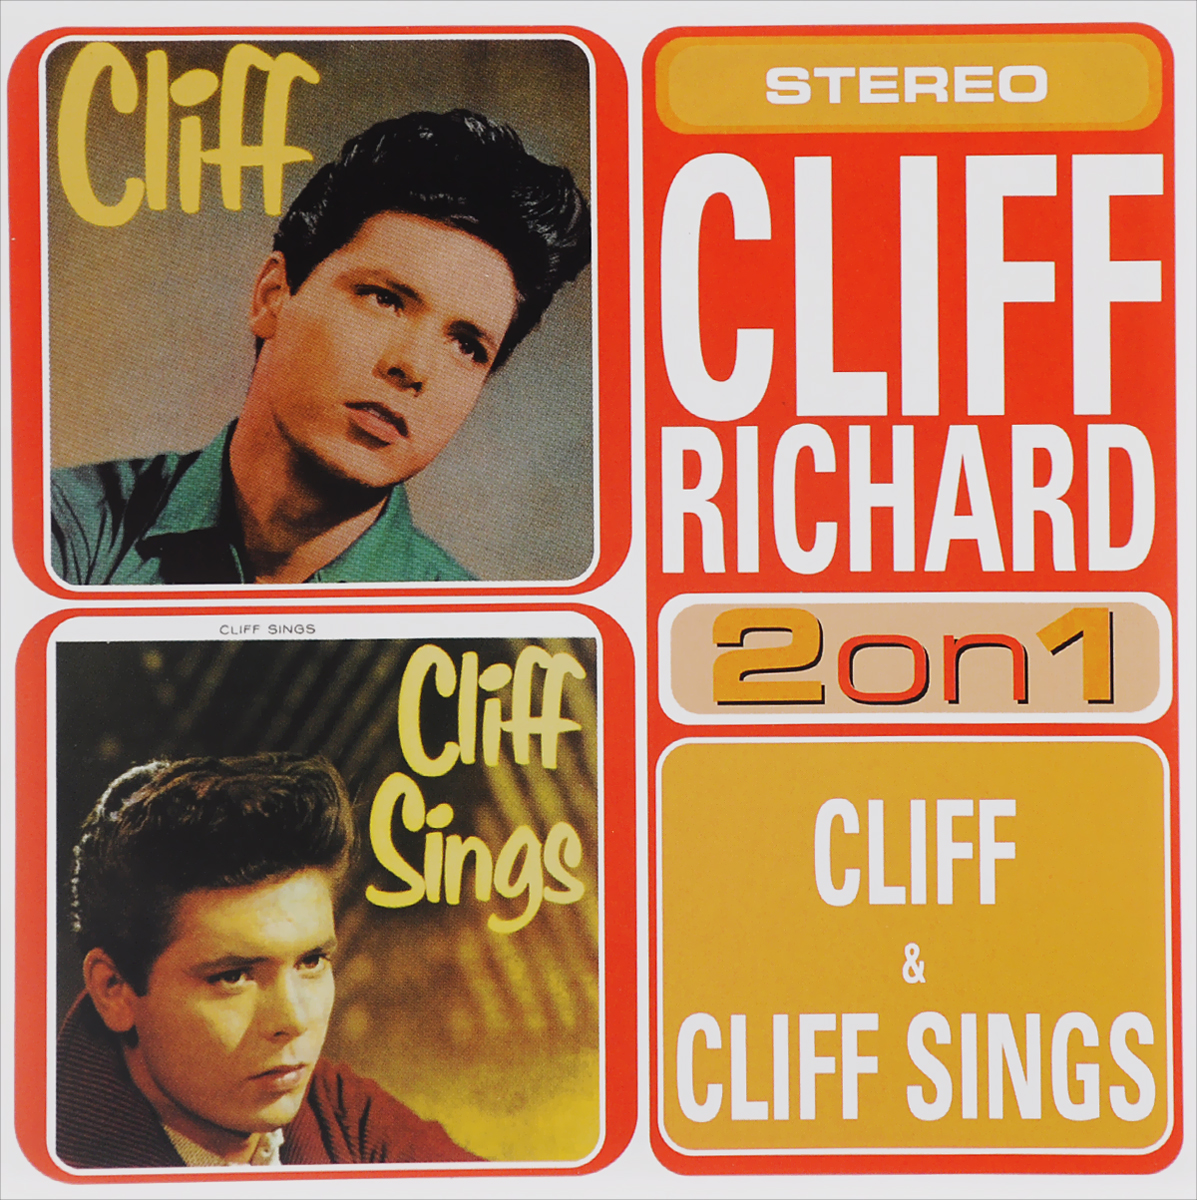 Клифф Ричард Cliff Richard. Cliff & Cliff Sings